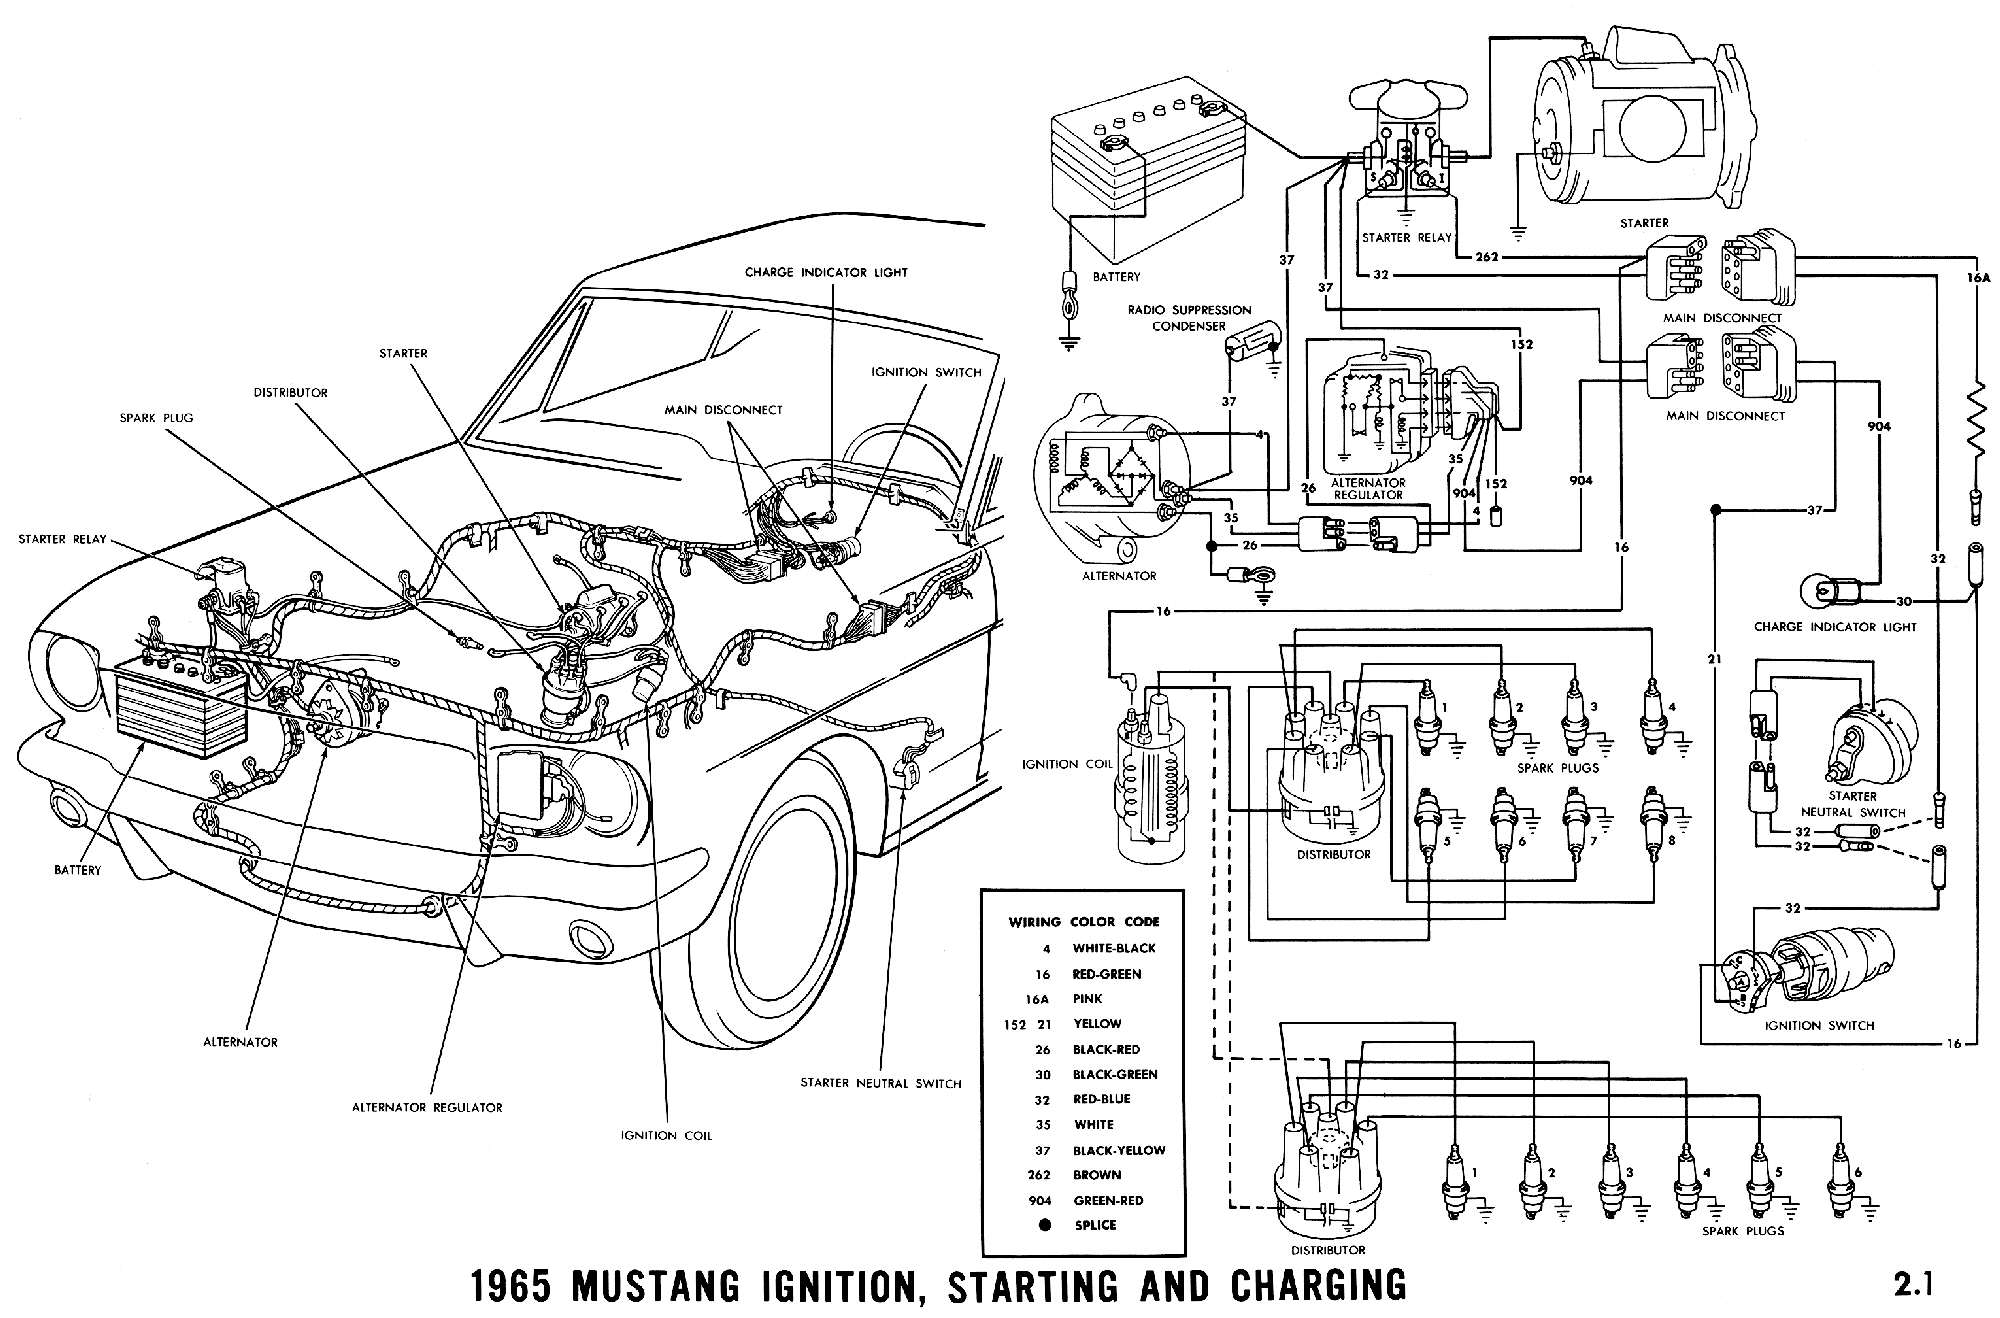 1965c 1965 mustang wiring diagrams average joe restoration 66 mustang ignition wiring diagram at crackthecode.co